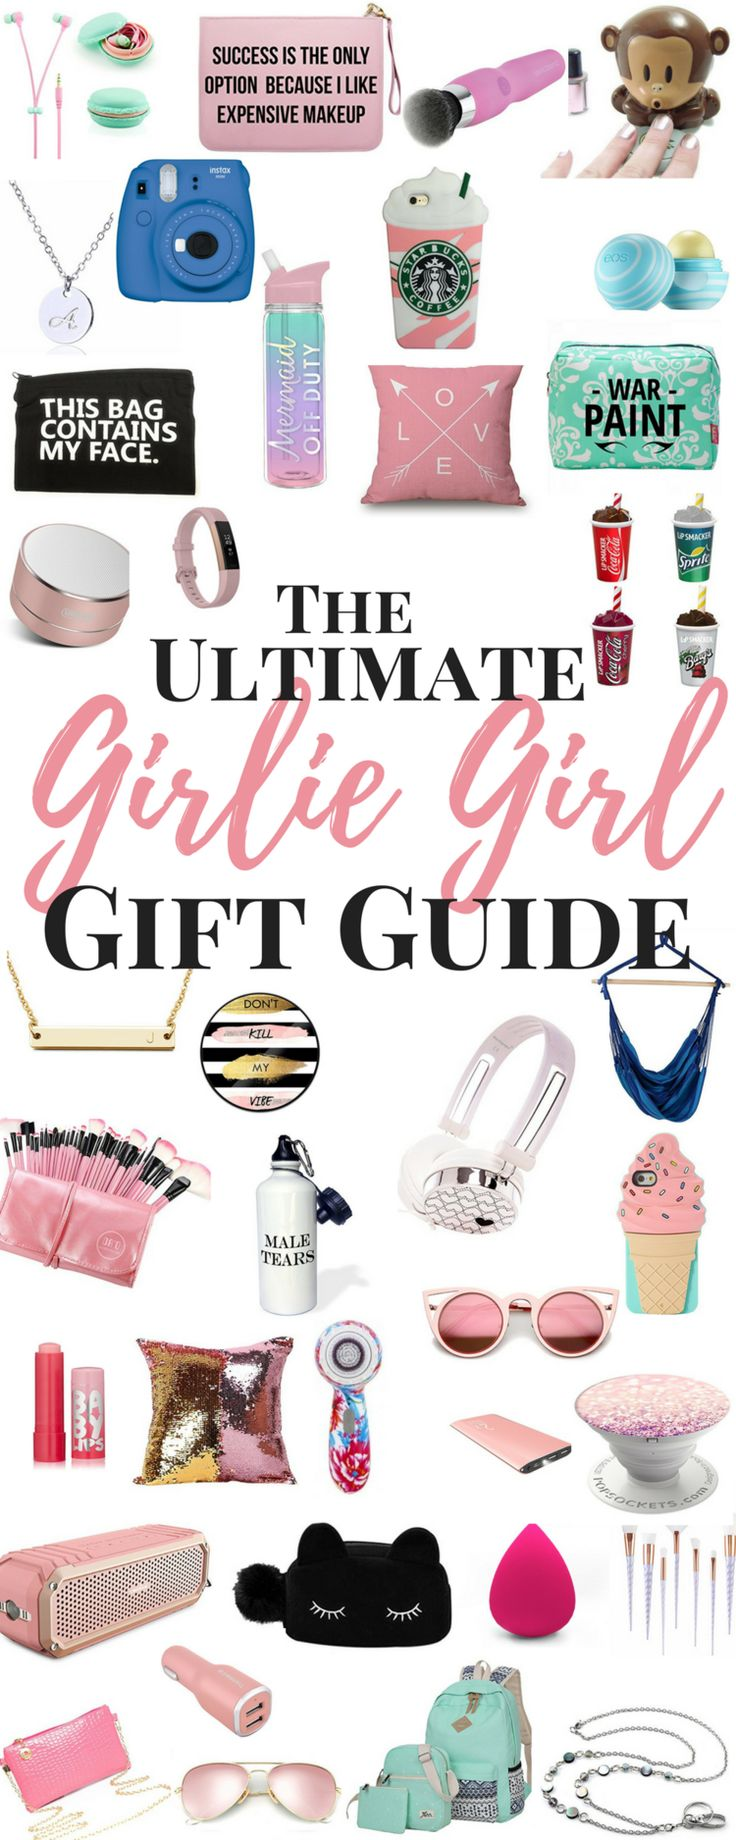 Gift Ideas for her - Girlie Girl Gift Guide. Looking for gift ideas for your best friend/bestie? Maybe a gift idea for teenage girls, or gift ideas for other women in your life? Here is a great Gift Guide for her. Lots of Gifts for the girly girl on your list!